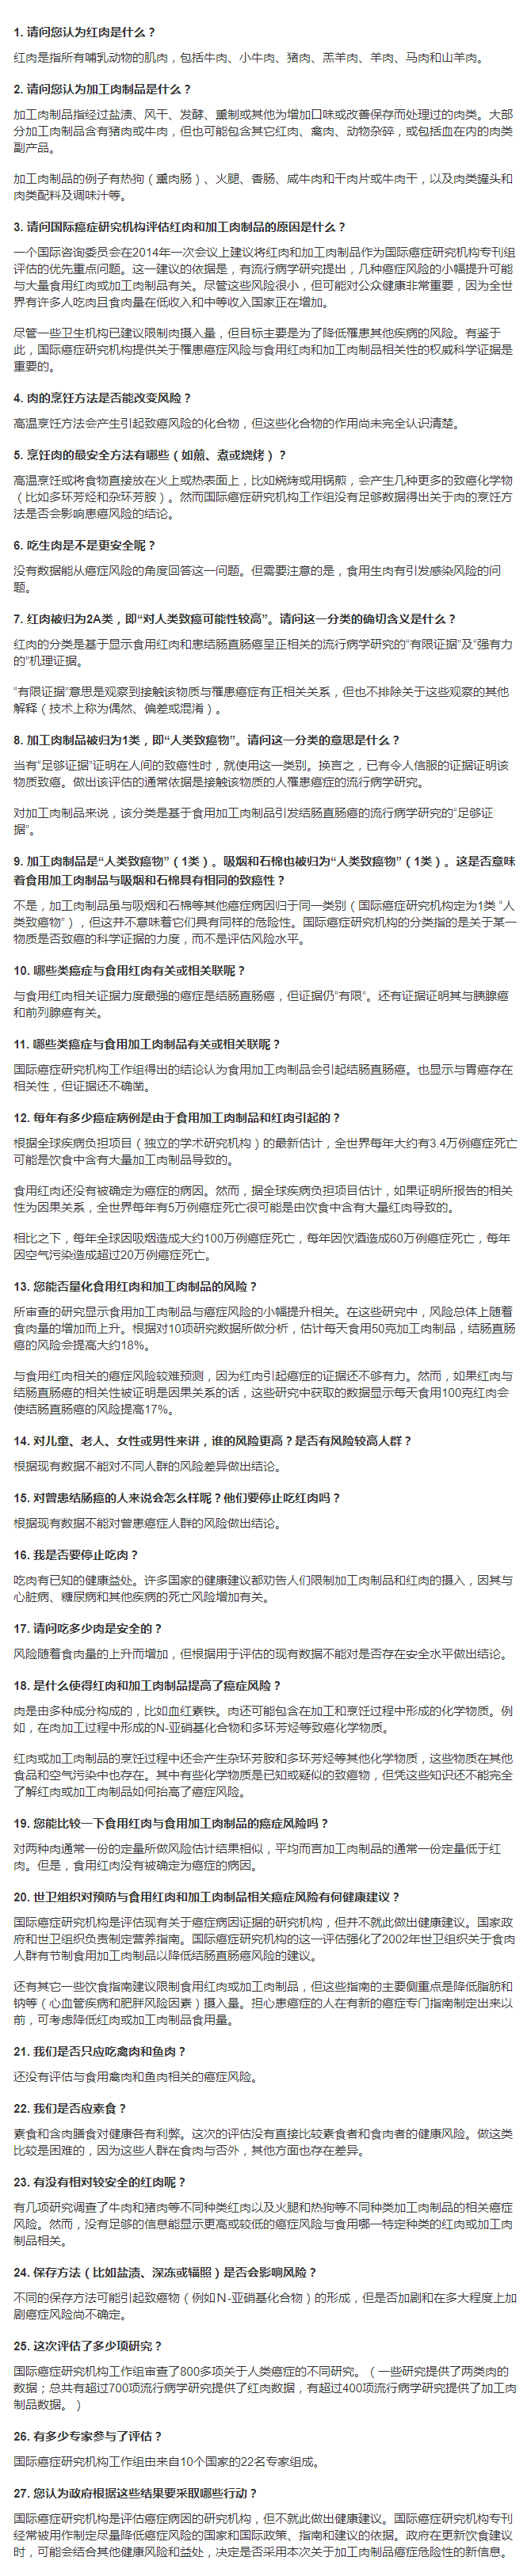 screencapture-who-int-features-qa-cancer-red-meat-zh-2019-09-04-23_38_59_看圖王_看圖王